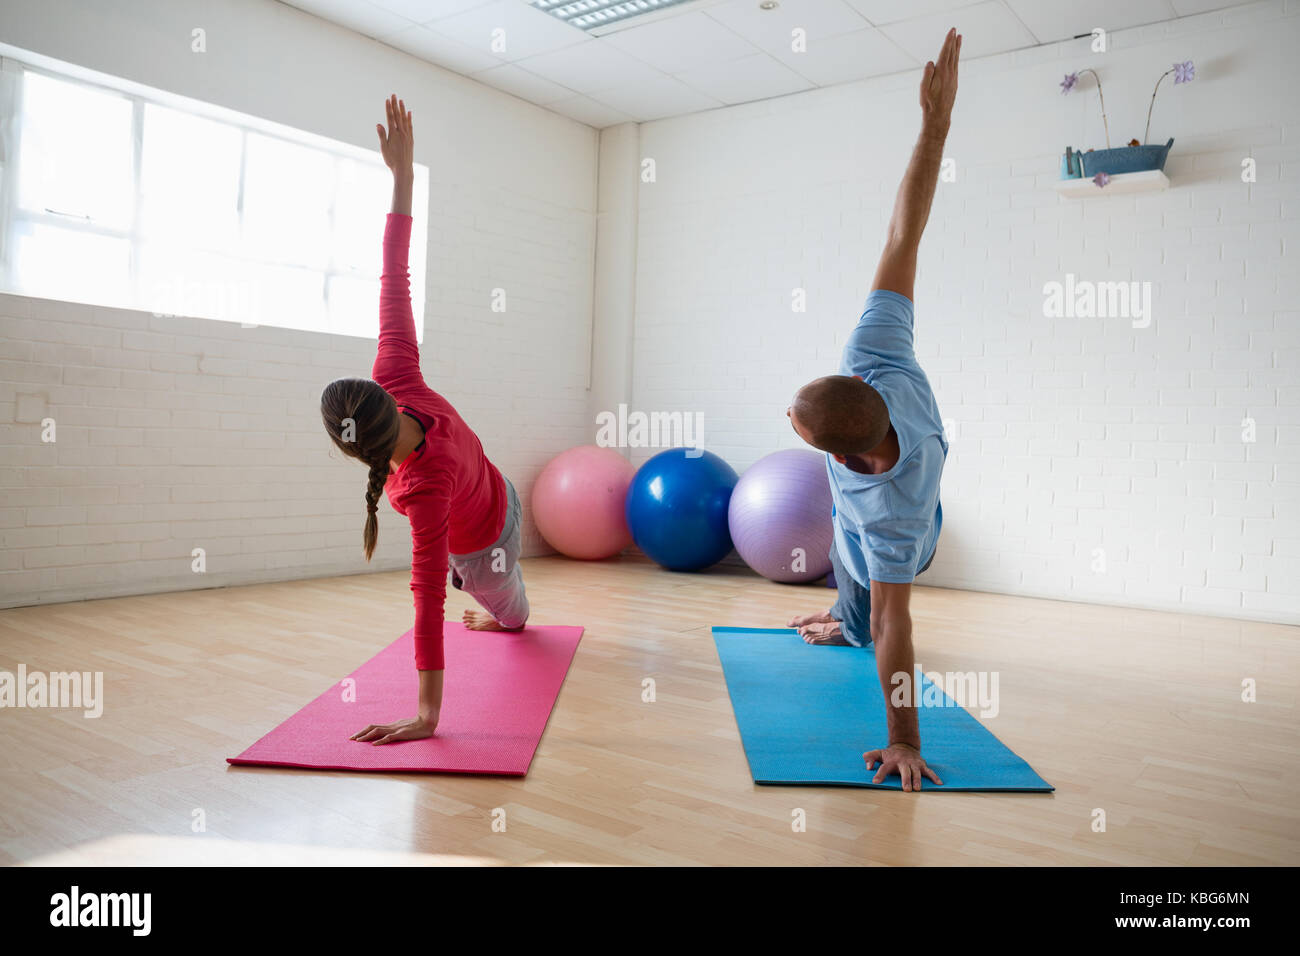 Instructor with female student practicing side plank pose in yoga studio - Stock Image